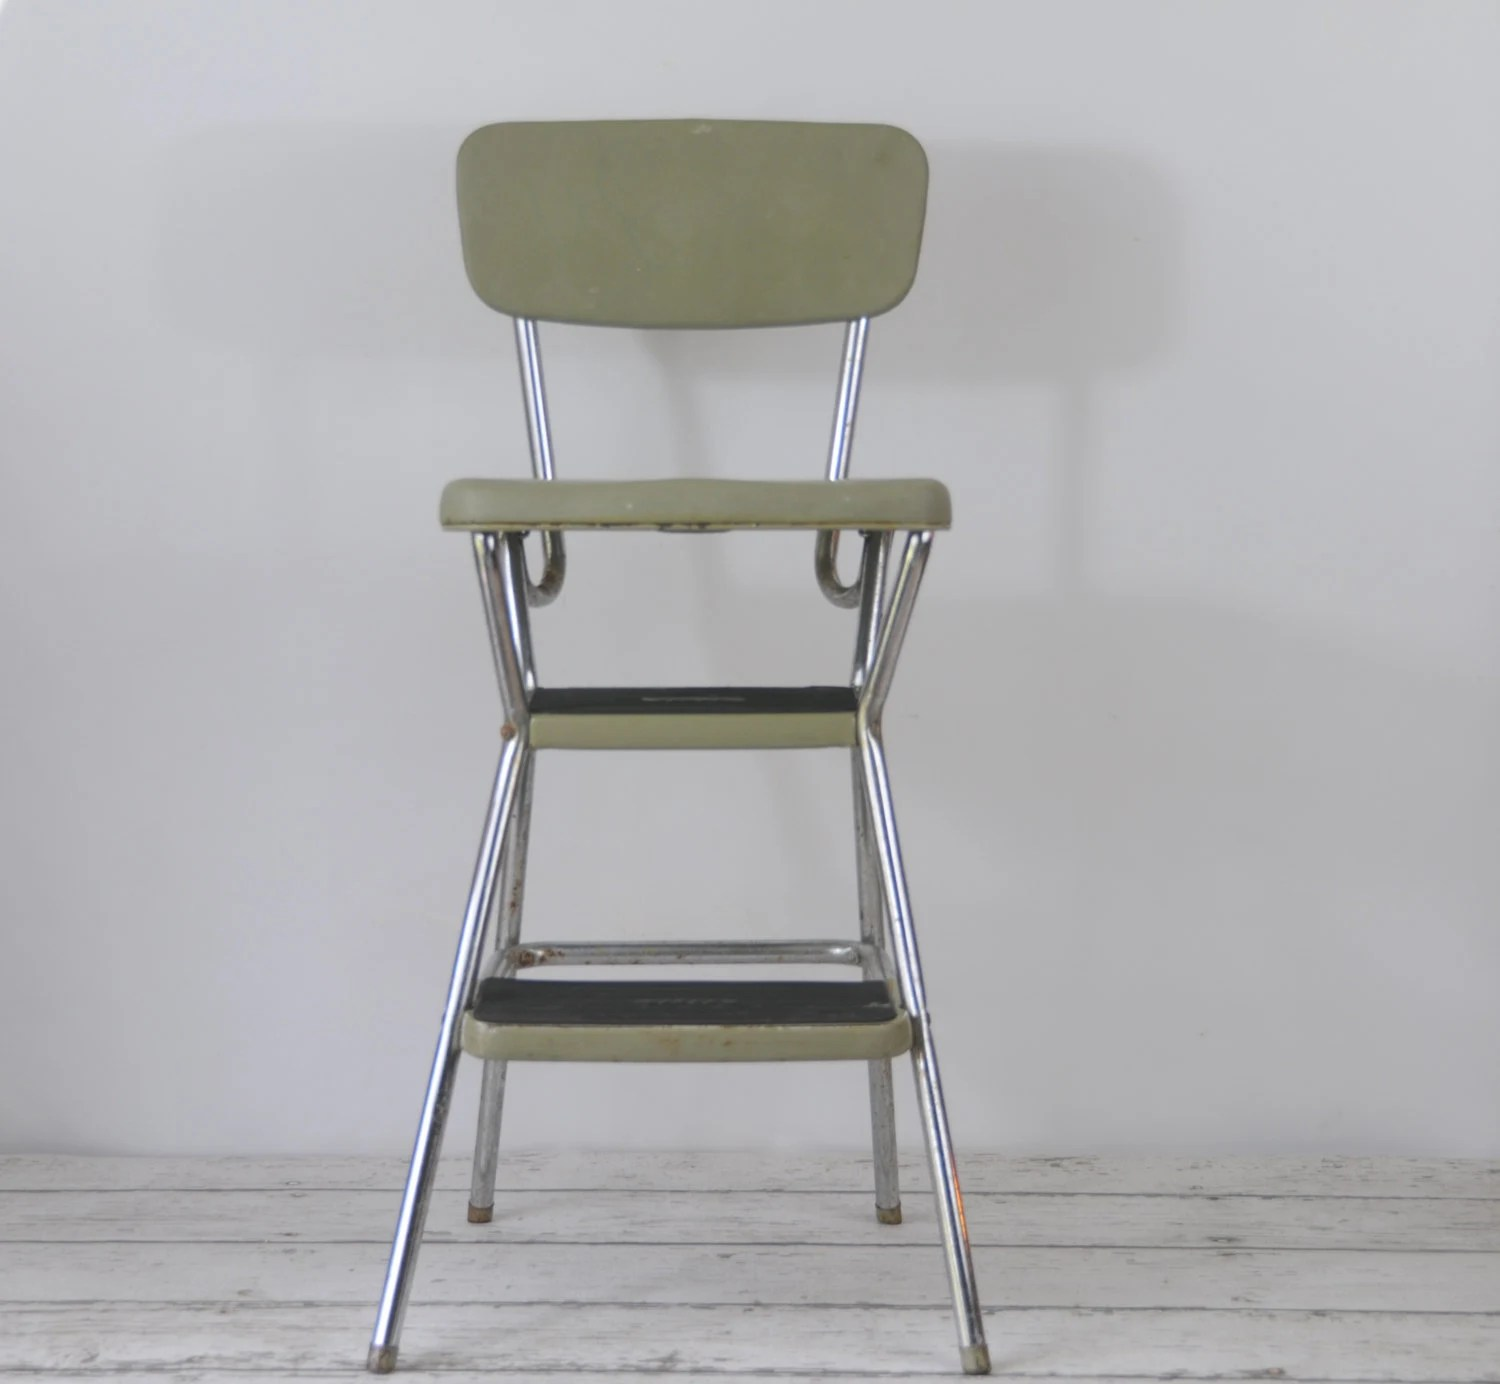 Vintage Cosco Retro Step Stool Flip Up Seat Booster 1950s